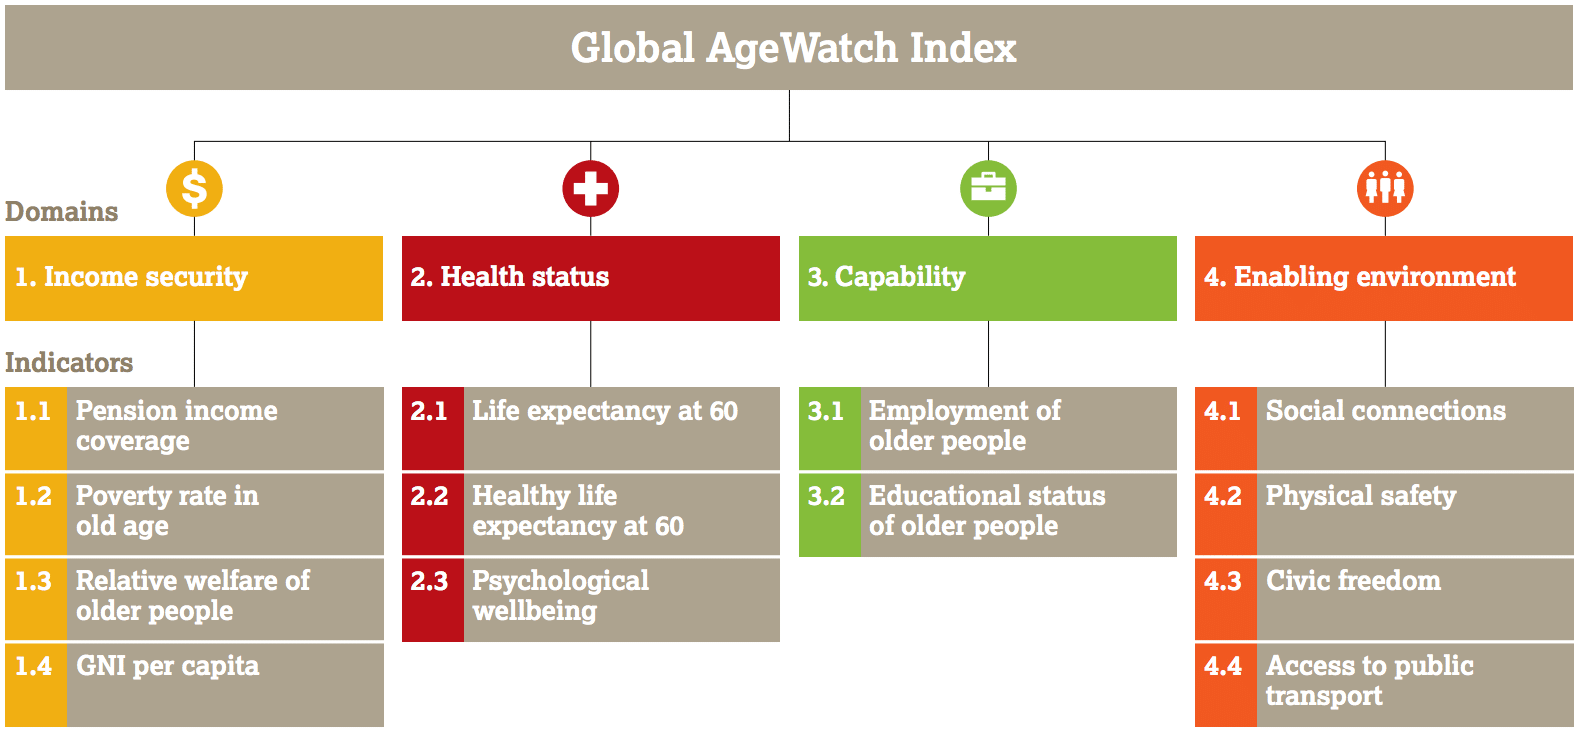 global-agewatch-index-2015-insight-report.pdf 2016-05-09 11-54-43